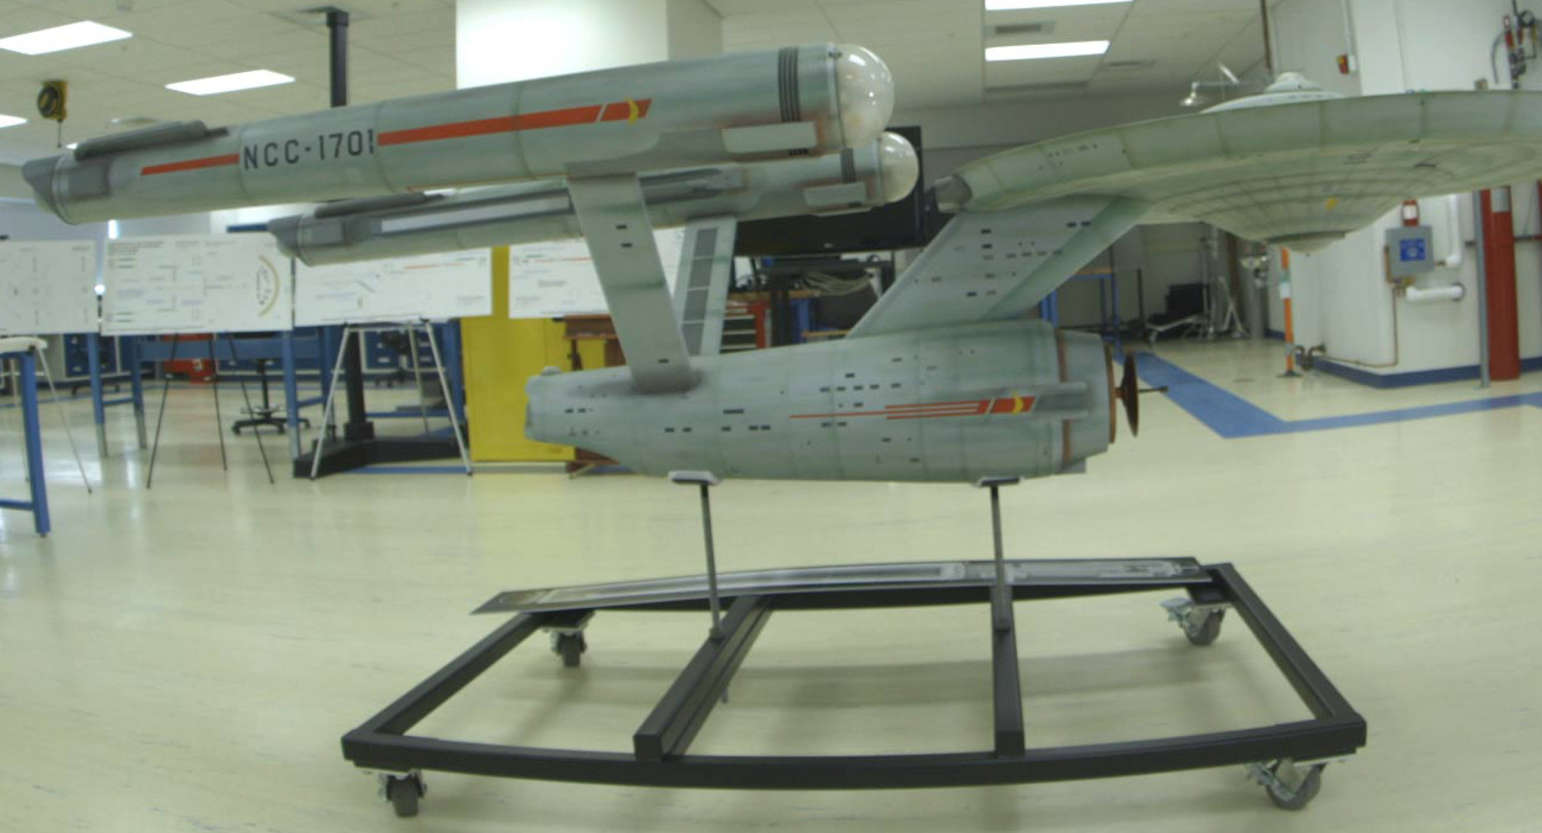 Original USS Enterprise model